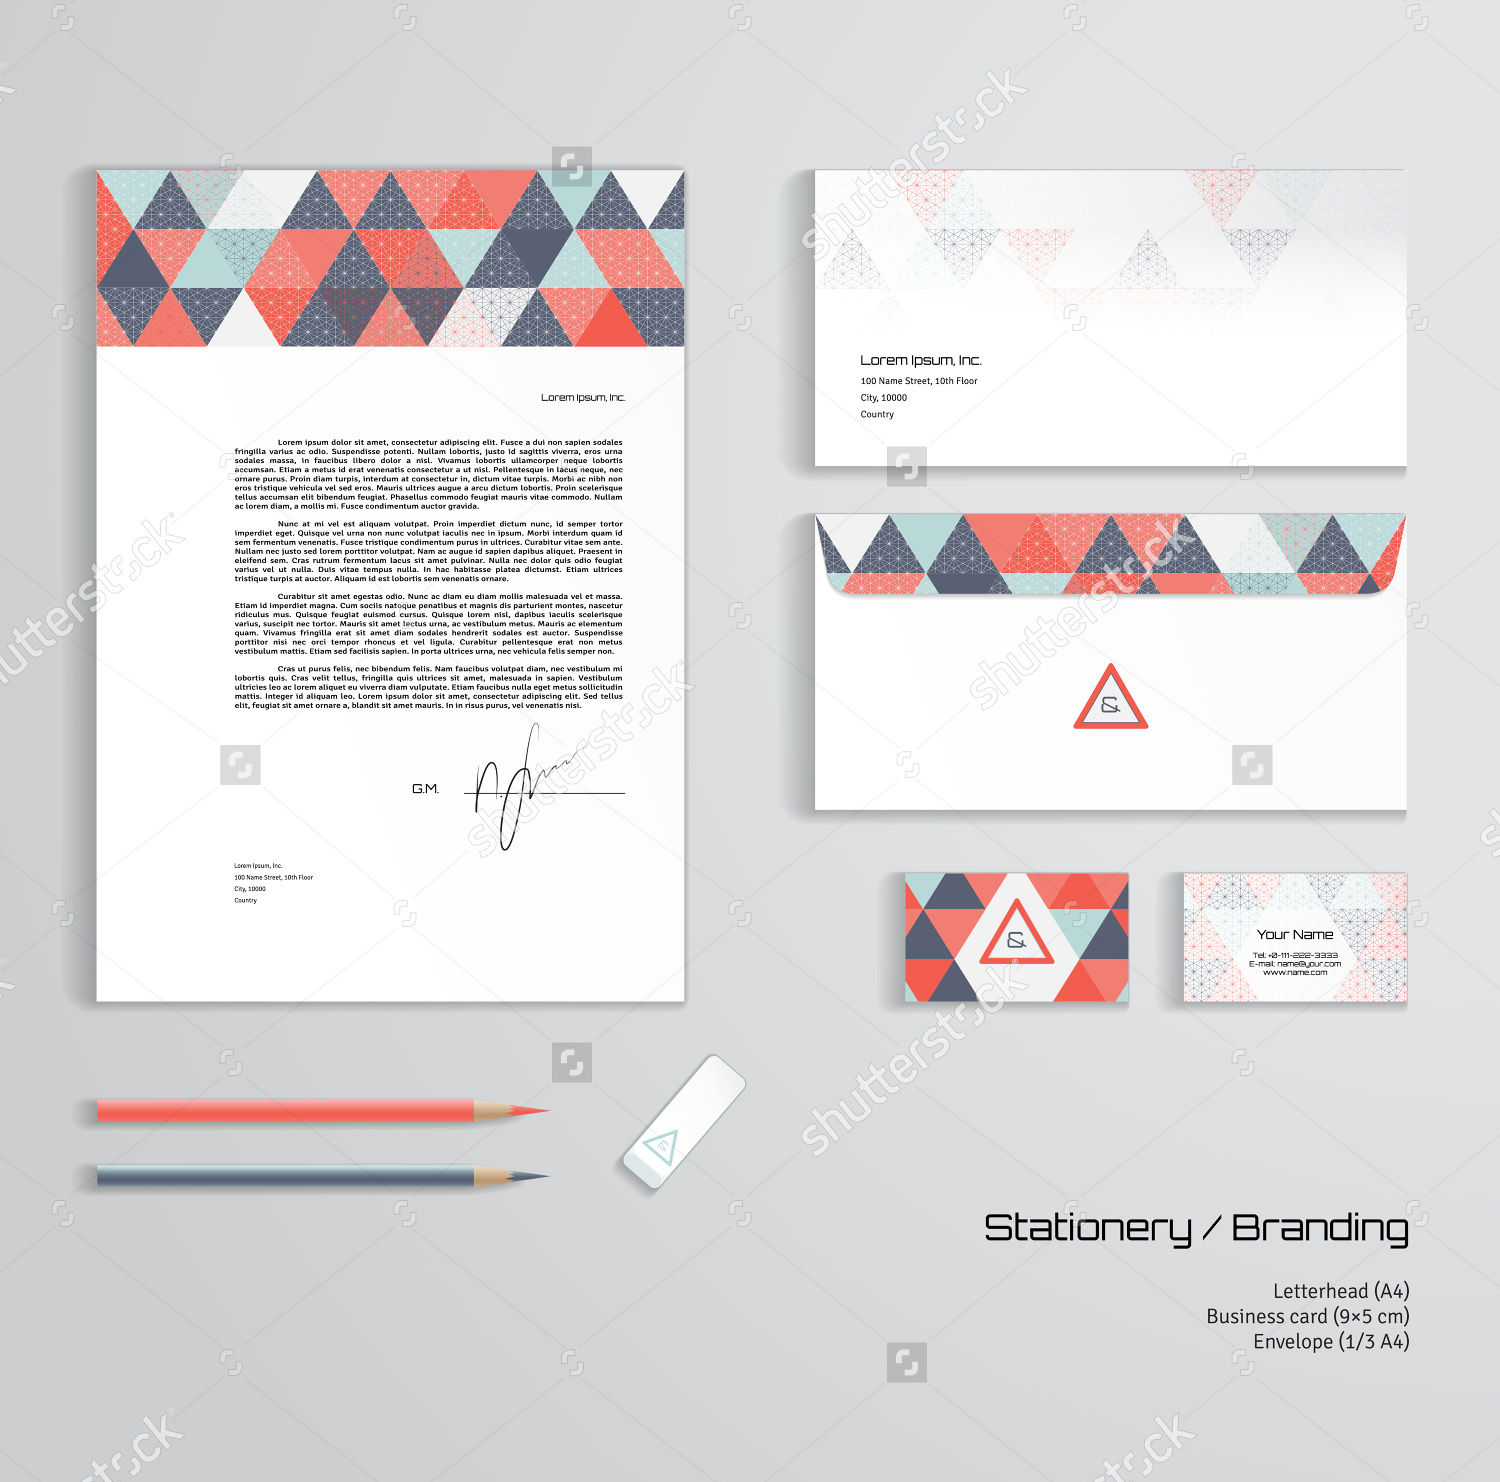 10+ Printable Envelope Designs